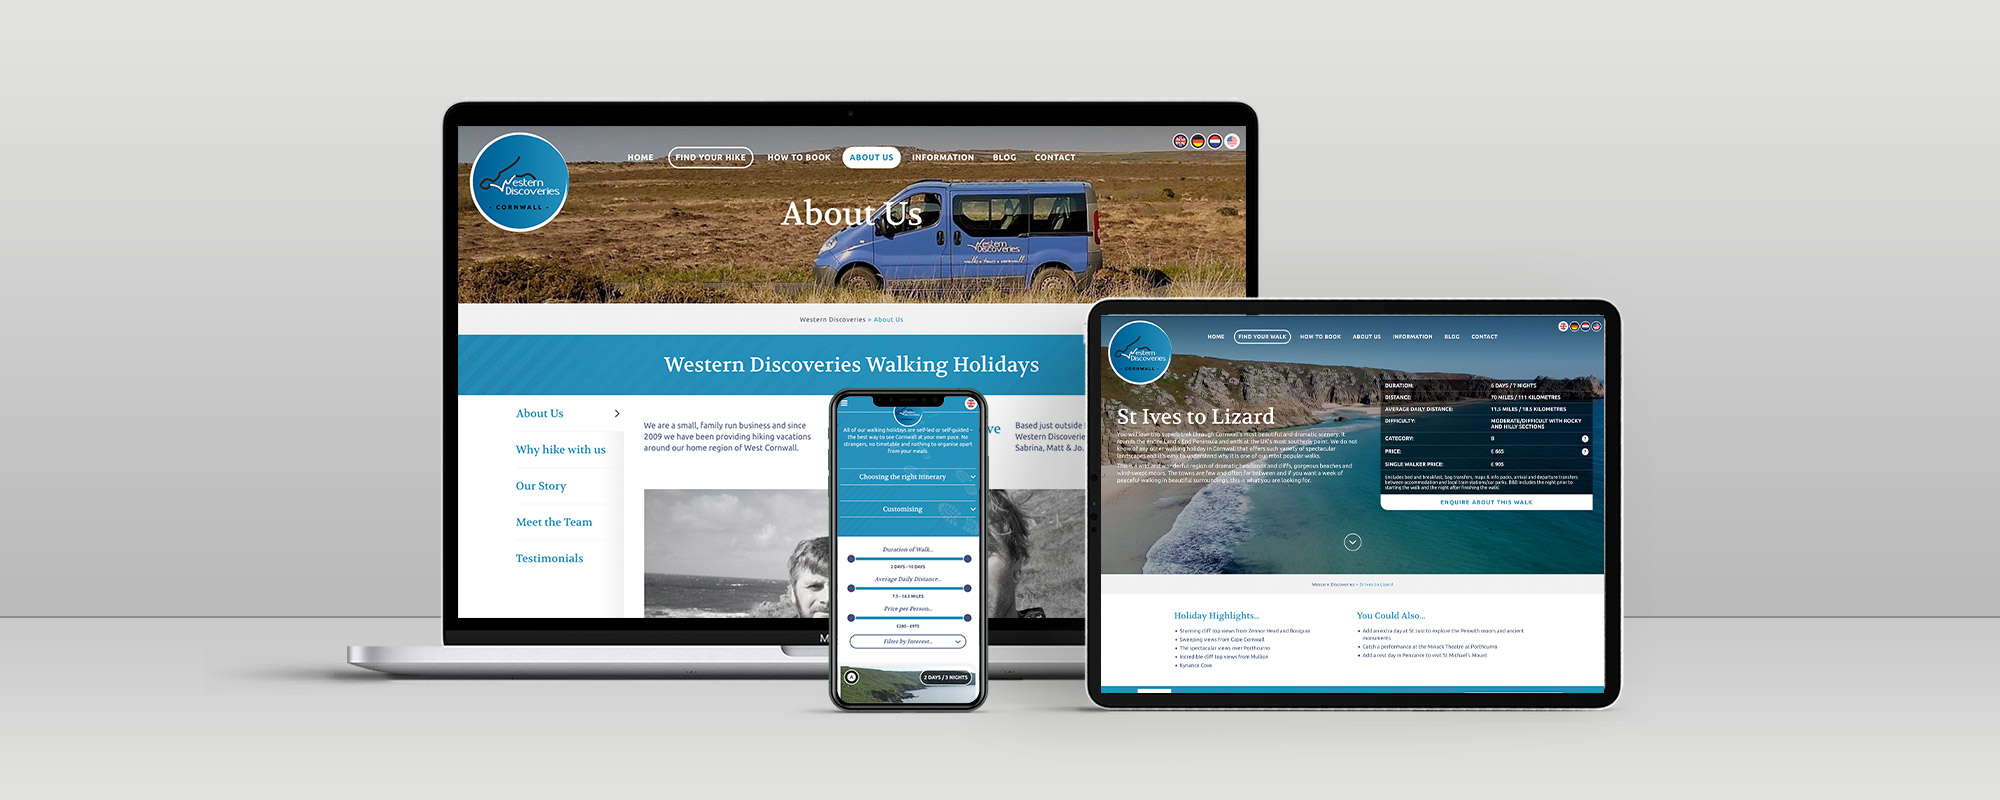 Western Discoveries Wordpress Website Design on 3 Devices